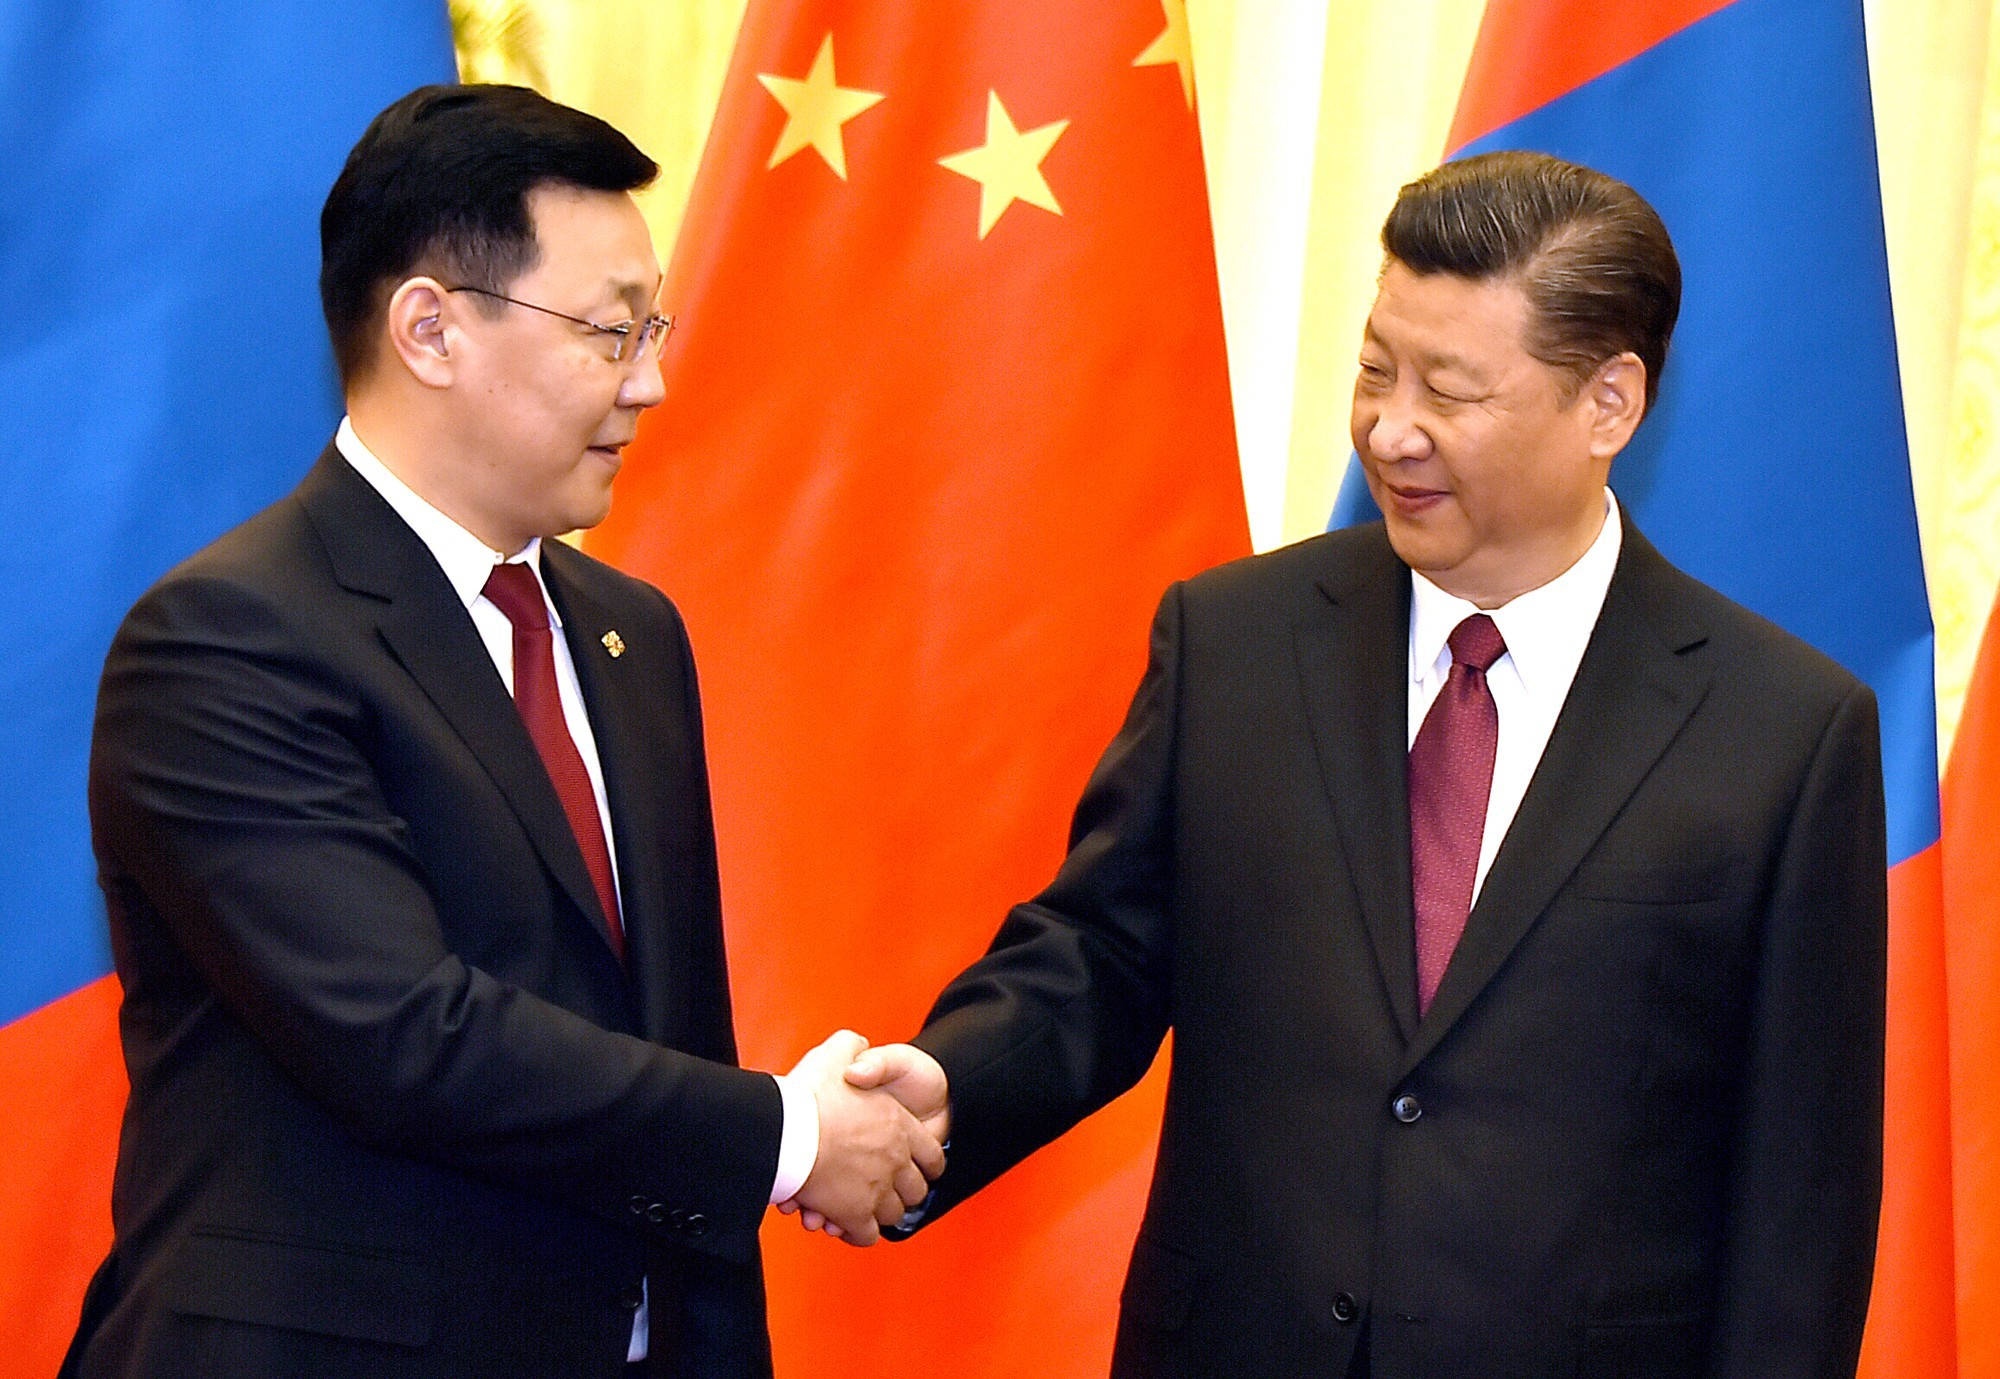 Of mongolia today tomorrow and the development bank of mongolia s -  In The Next Three Years Prime Minister Of Mongolia J Erdenebat Paid A Courtesy Call On President Of The People S Republic Of China Xi Jinping Today